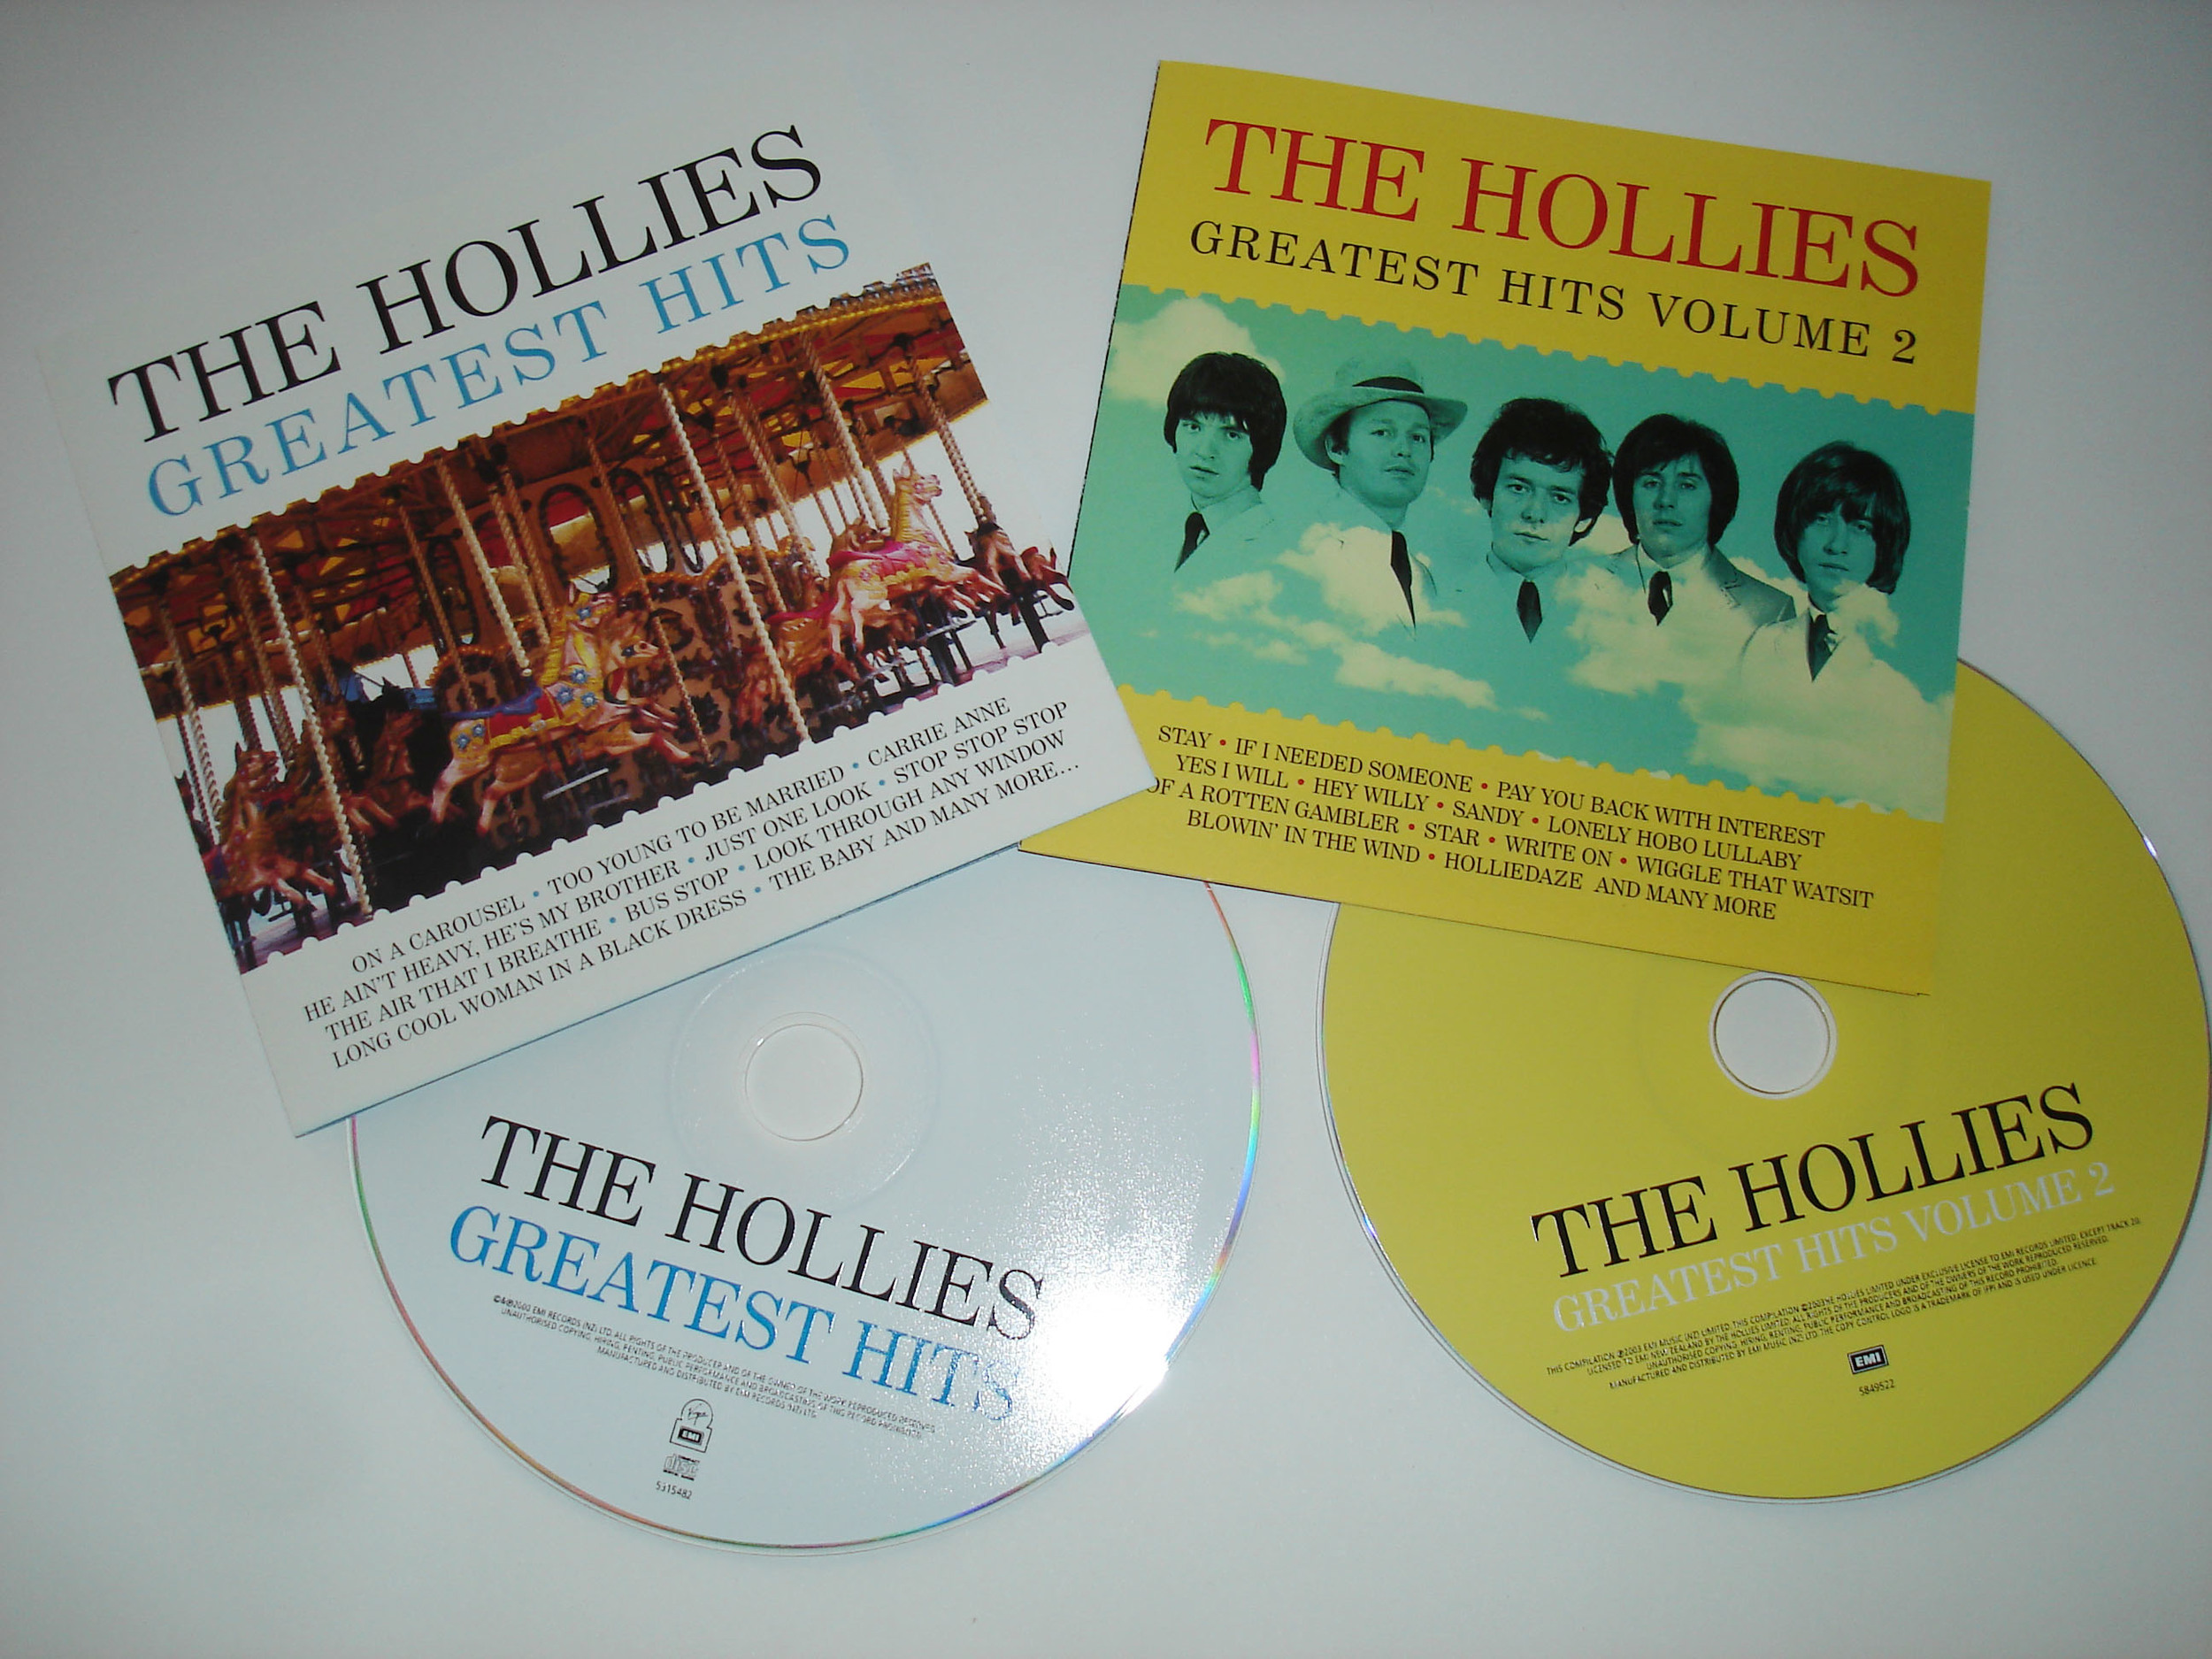 THE HOLLIES - GREATEST HITS VOLS. 1 & 2 - ALBUMS